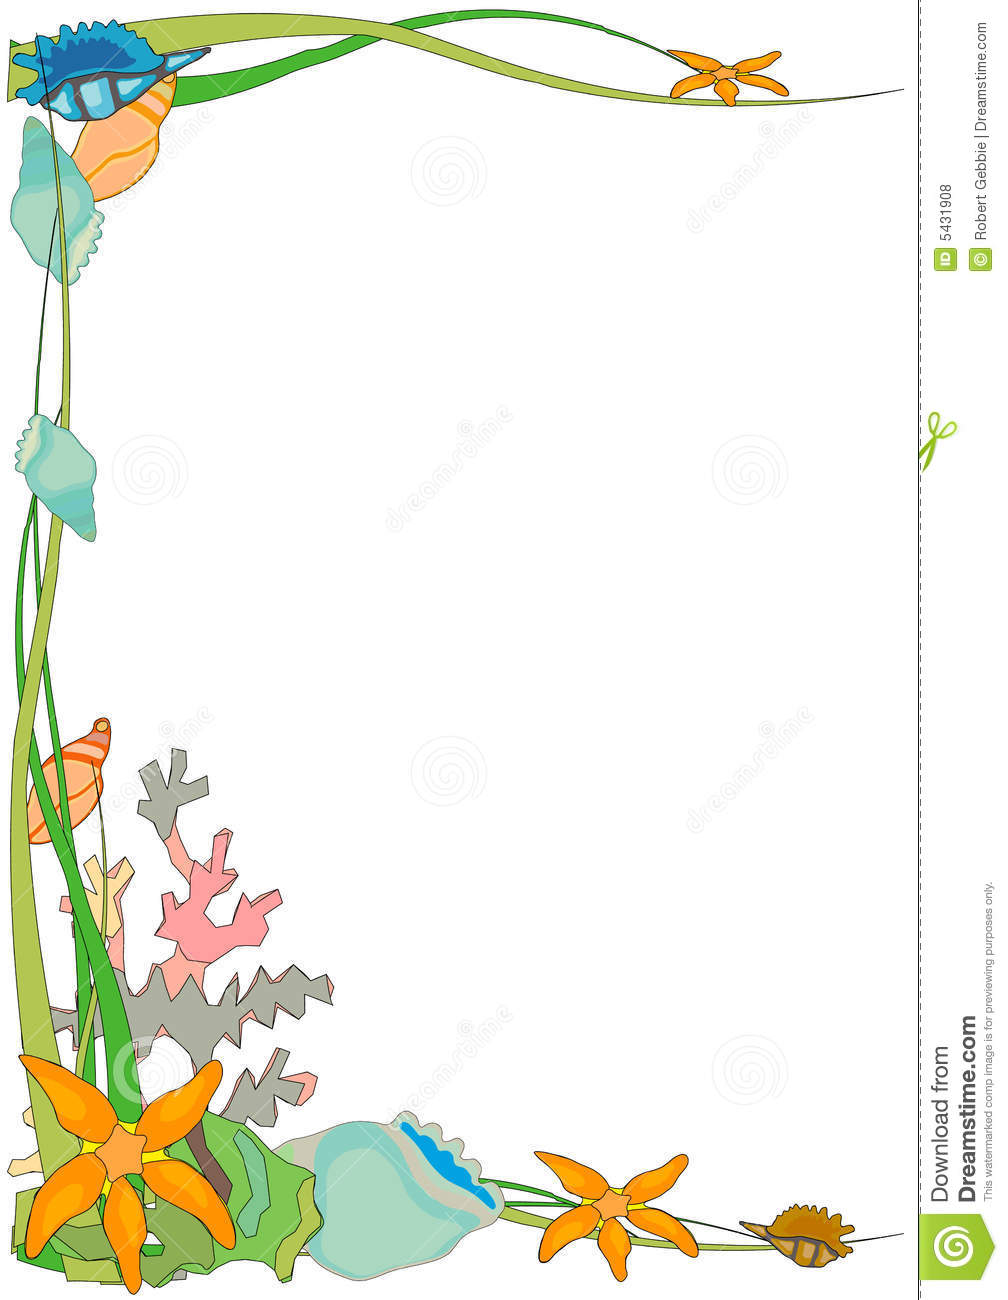 The Sea clipart border Border border May Collection also